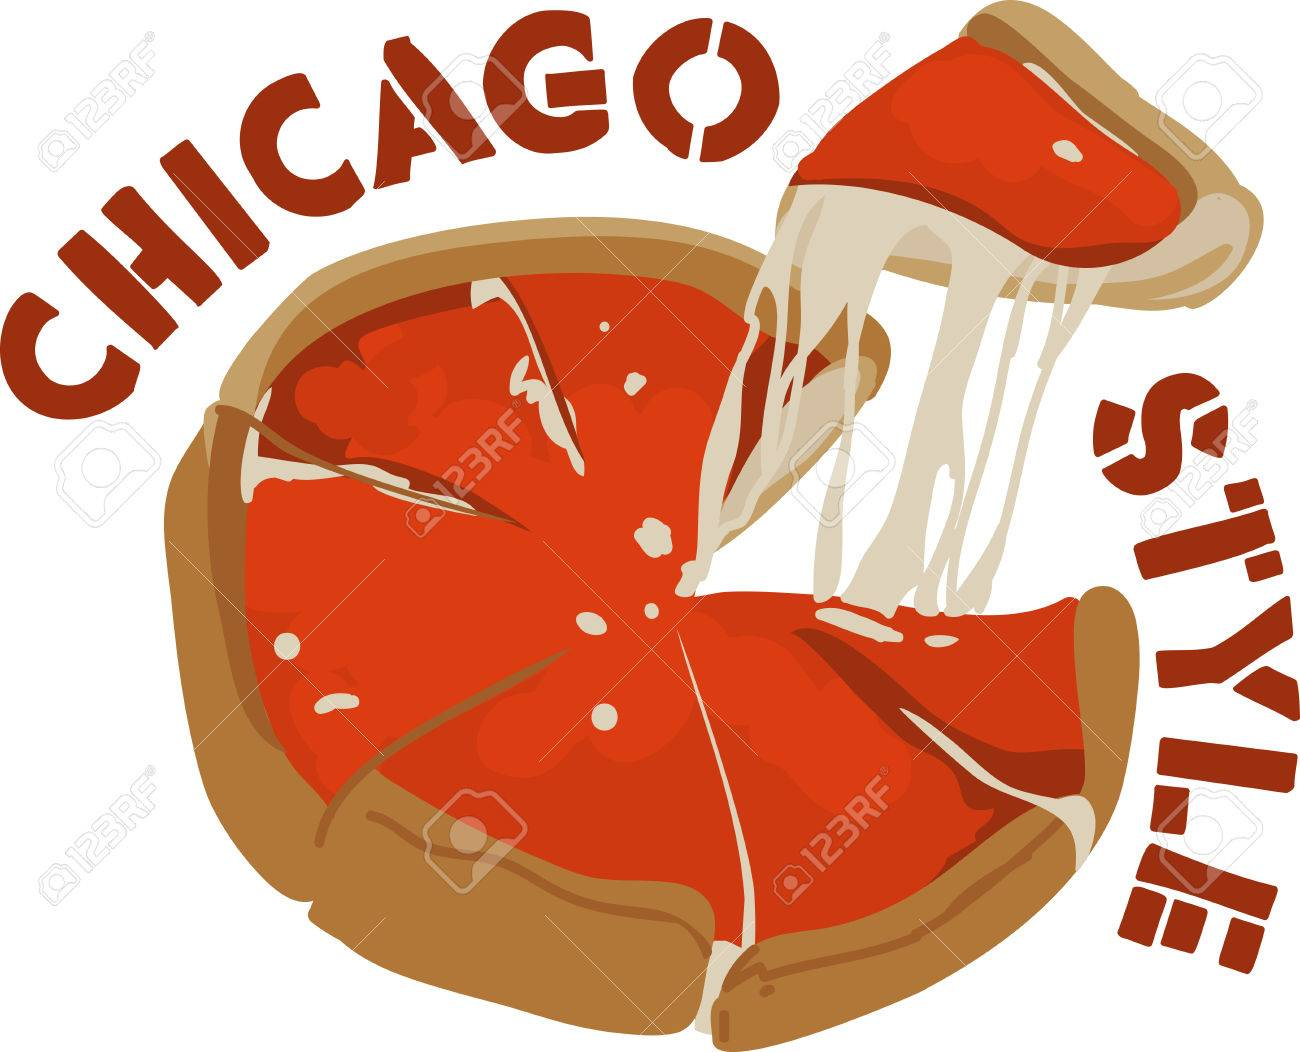 Cheesy deep dish pizza is a favored Chicago Style food..